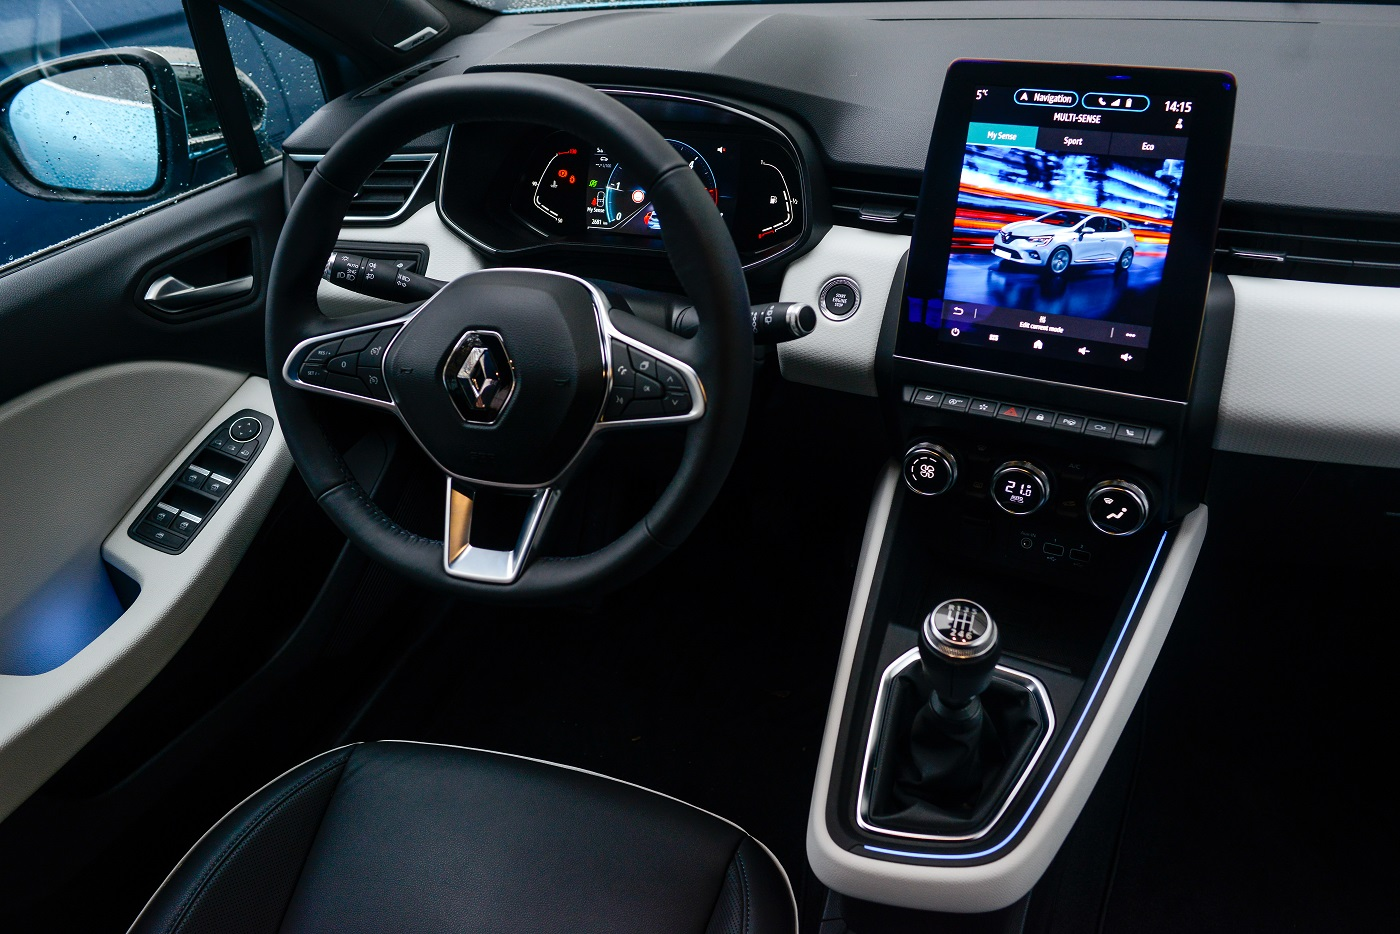 Test drive Renault Clio 115 dCi (41)